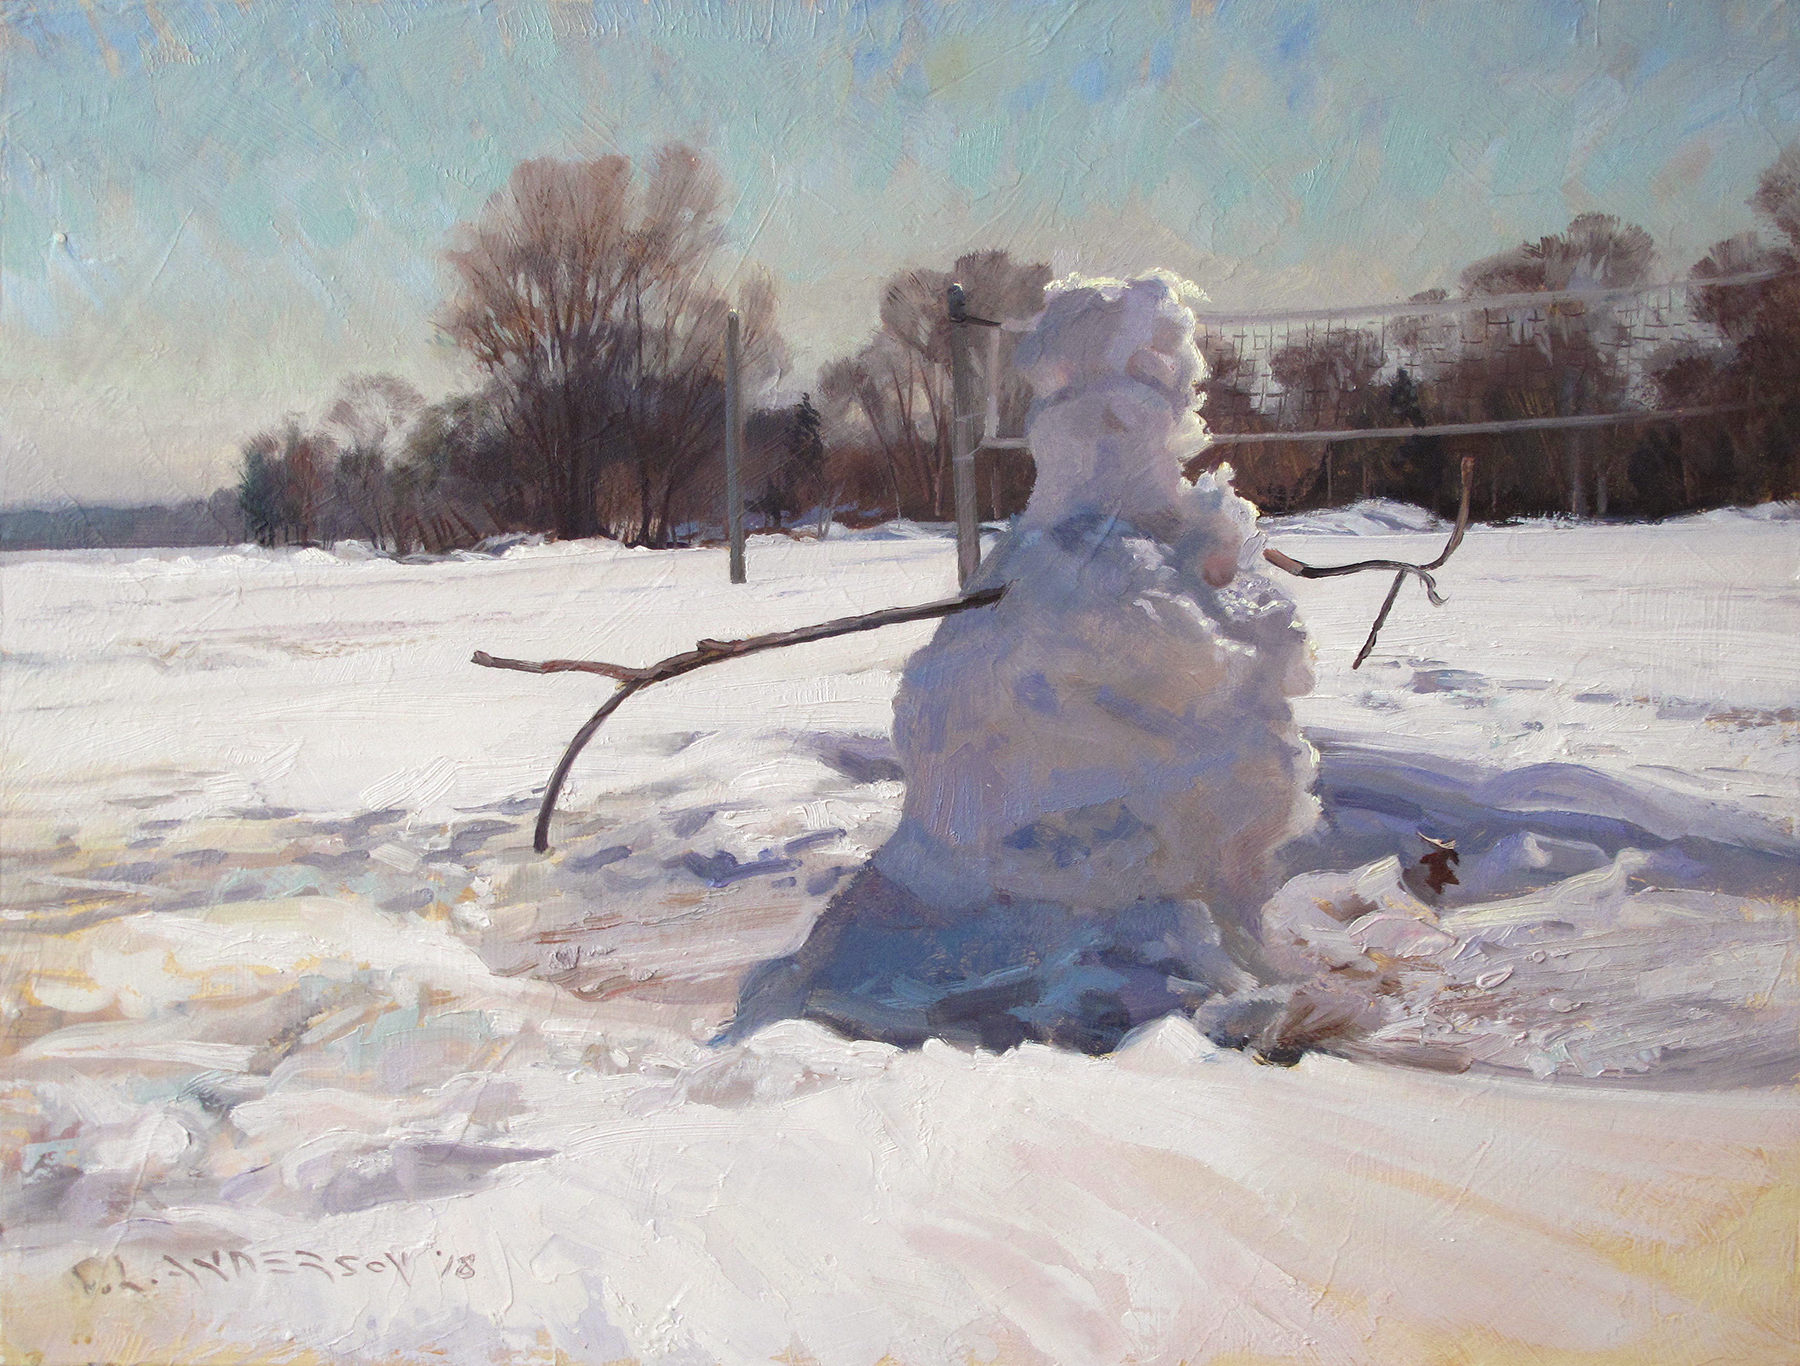 Snowperson 35  18 x 24 oil on panel  She can dream of beach volleyball, can't she?